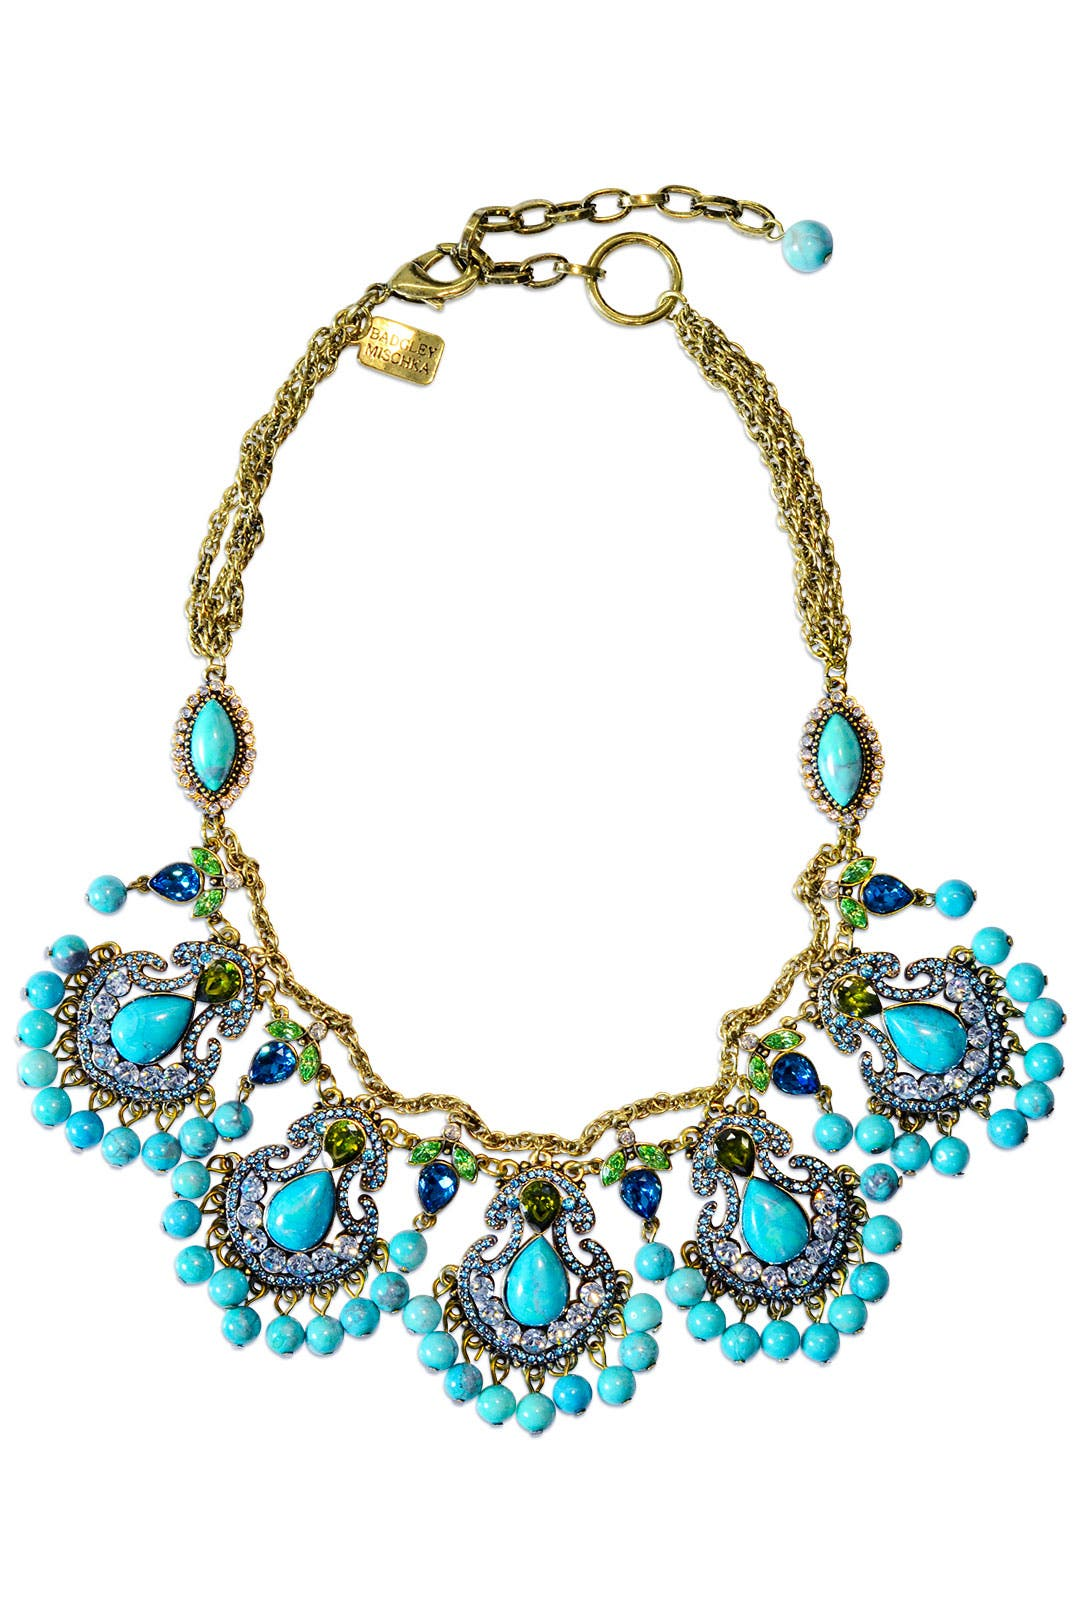 Entrancing Blue Necklace by Badgley Mischka Jewelry